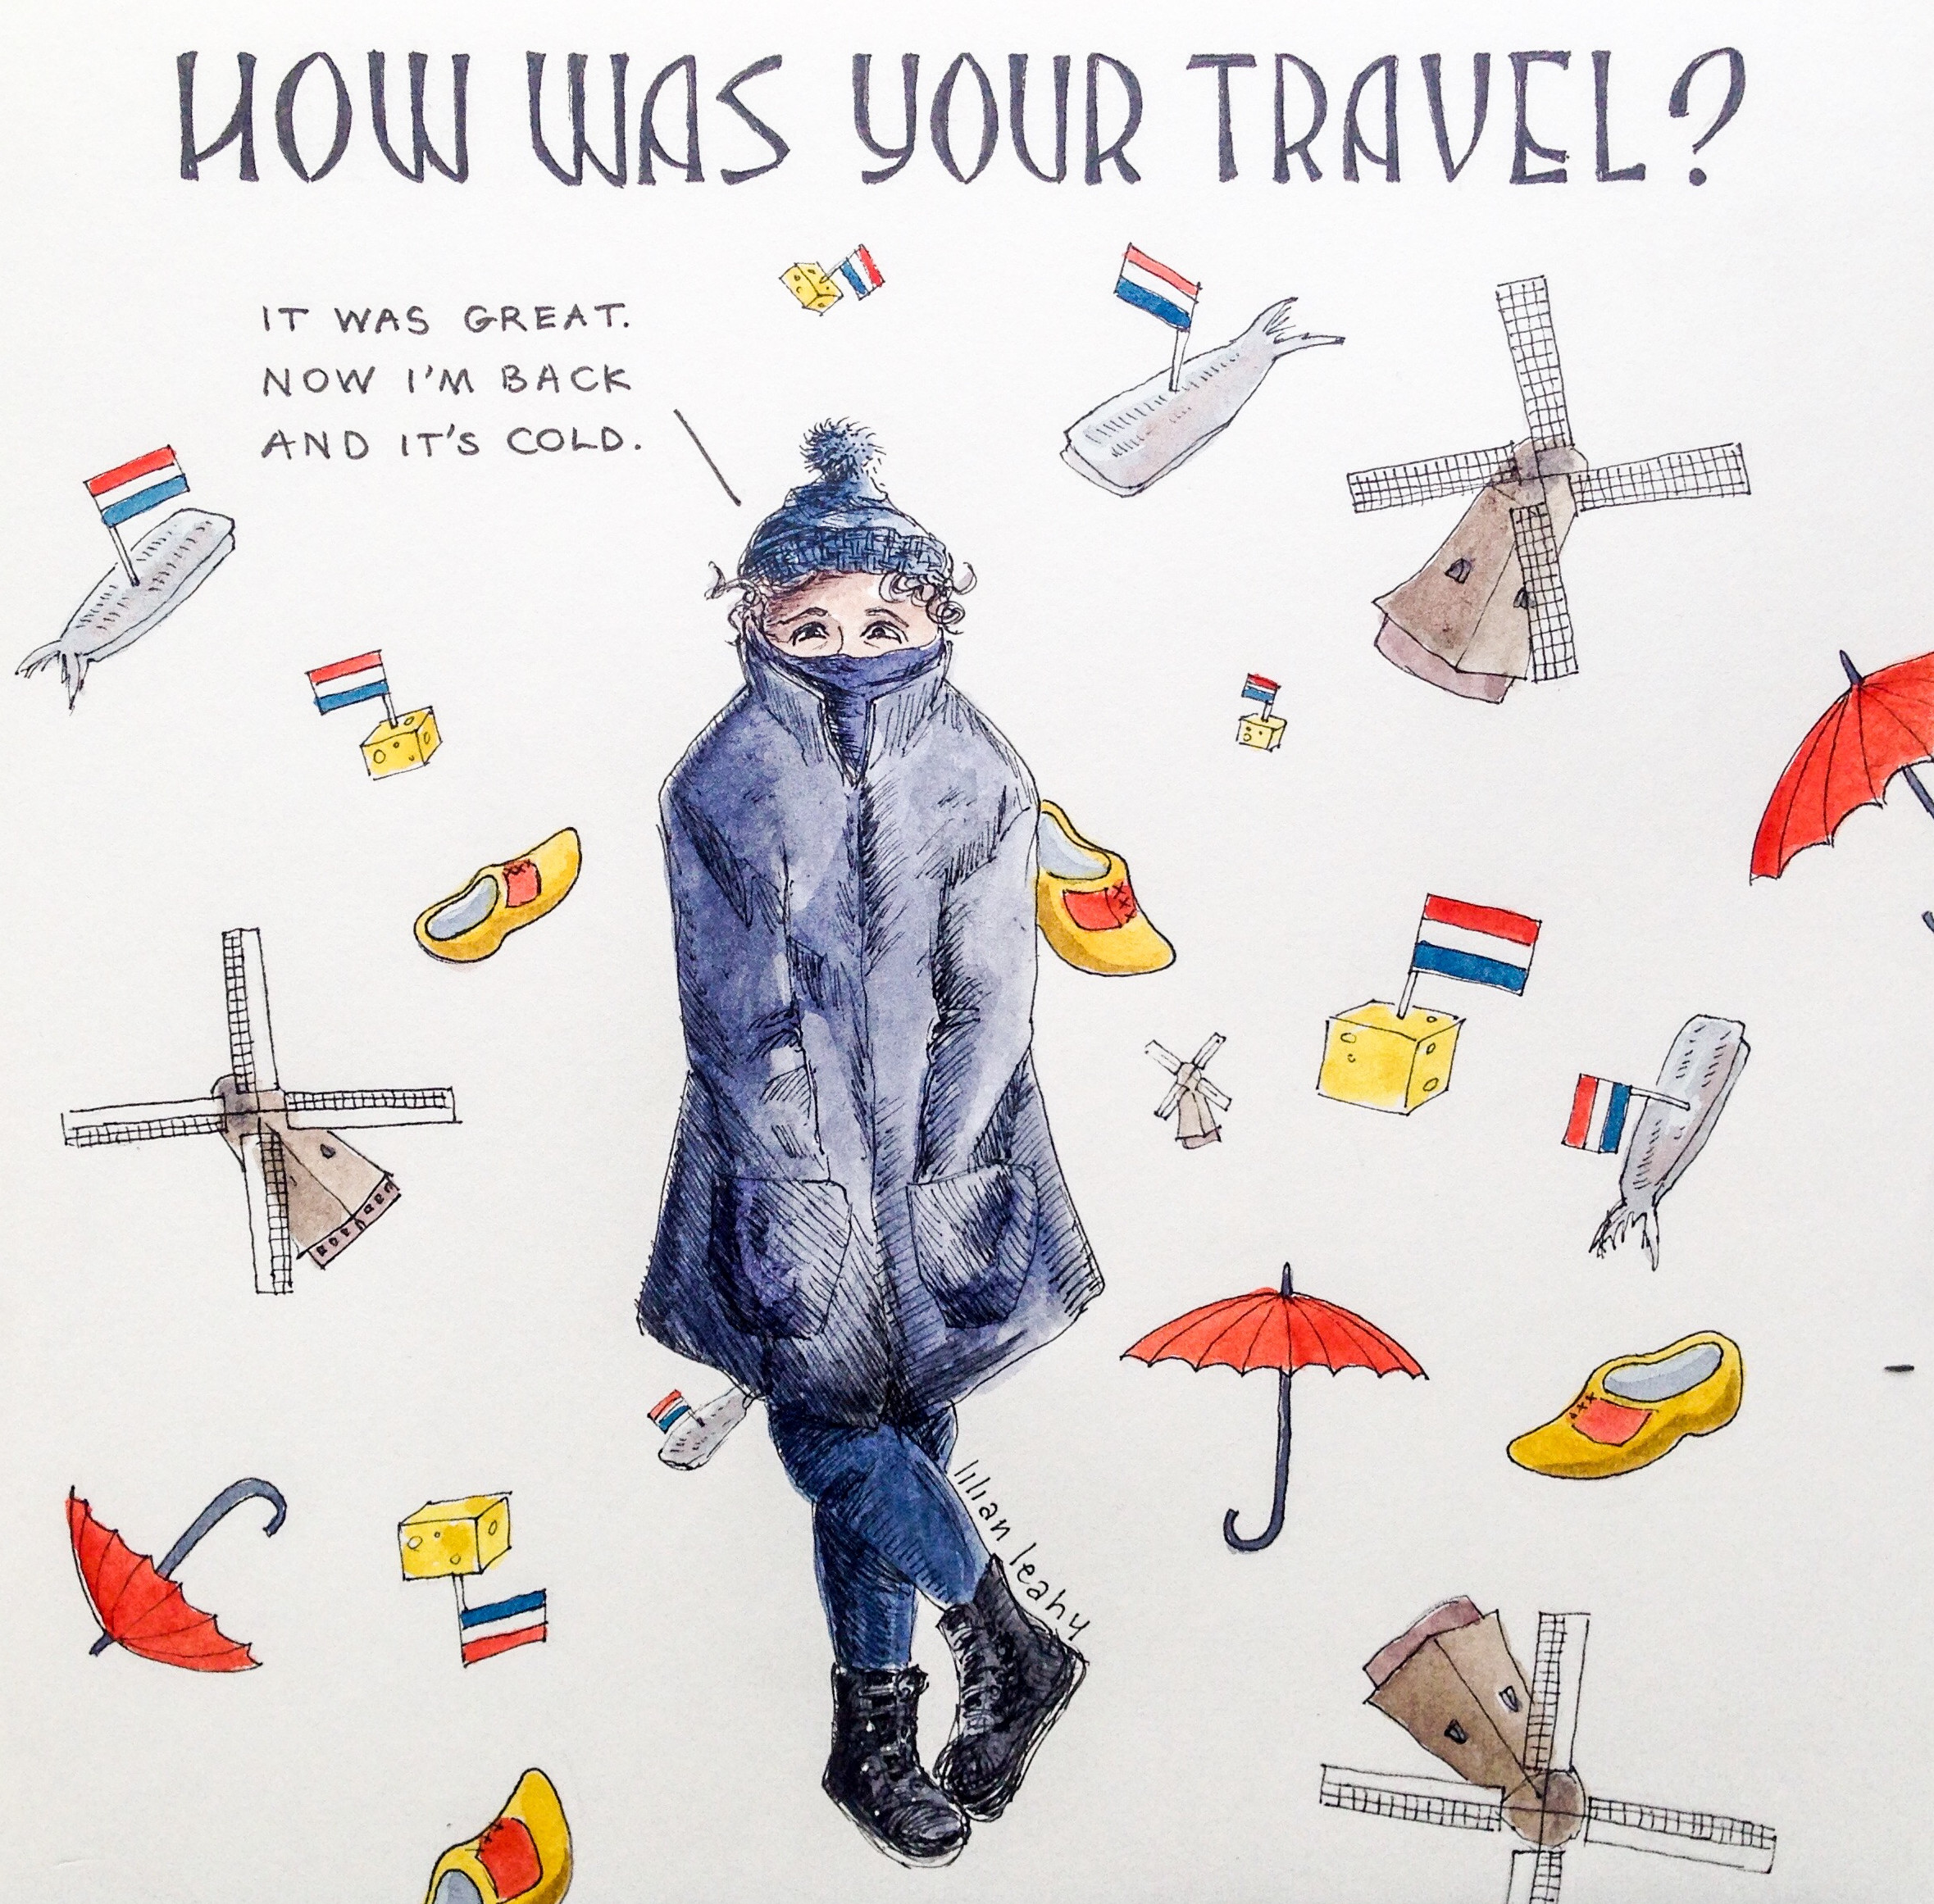 illustration lilian leahy traveling coming home cold dutch holland the netherlands how was your travel ink and watercolor illustrator Rotterdam